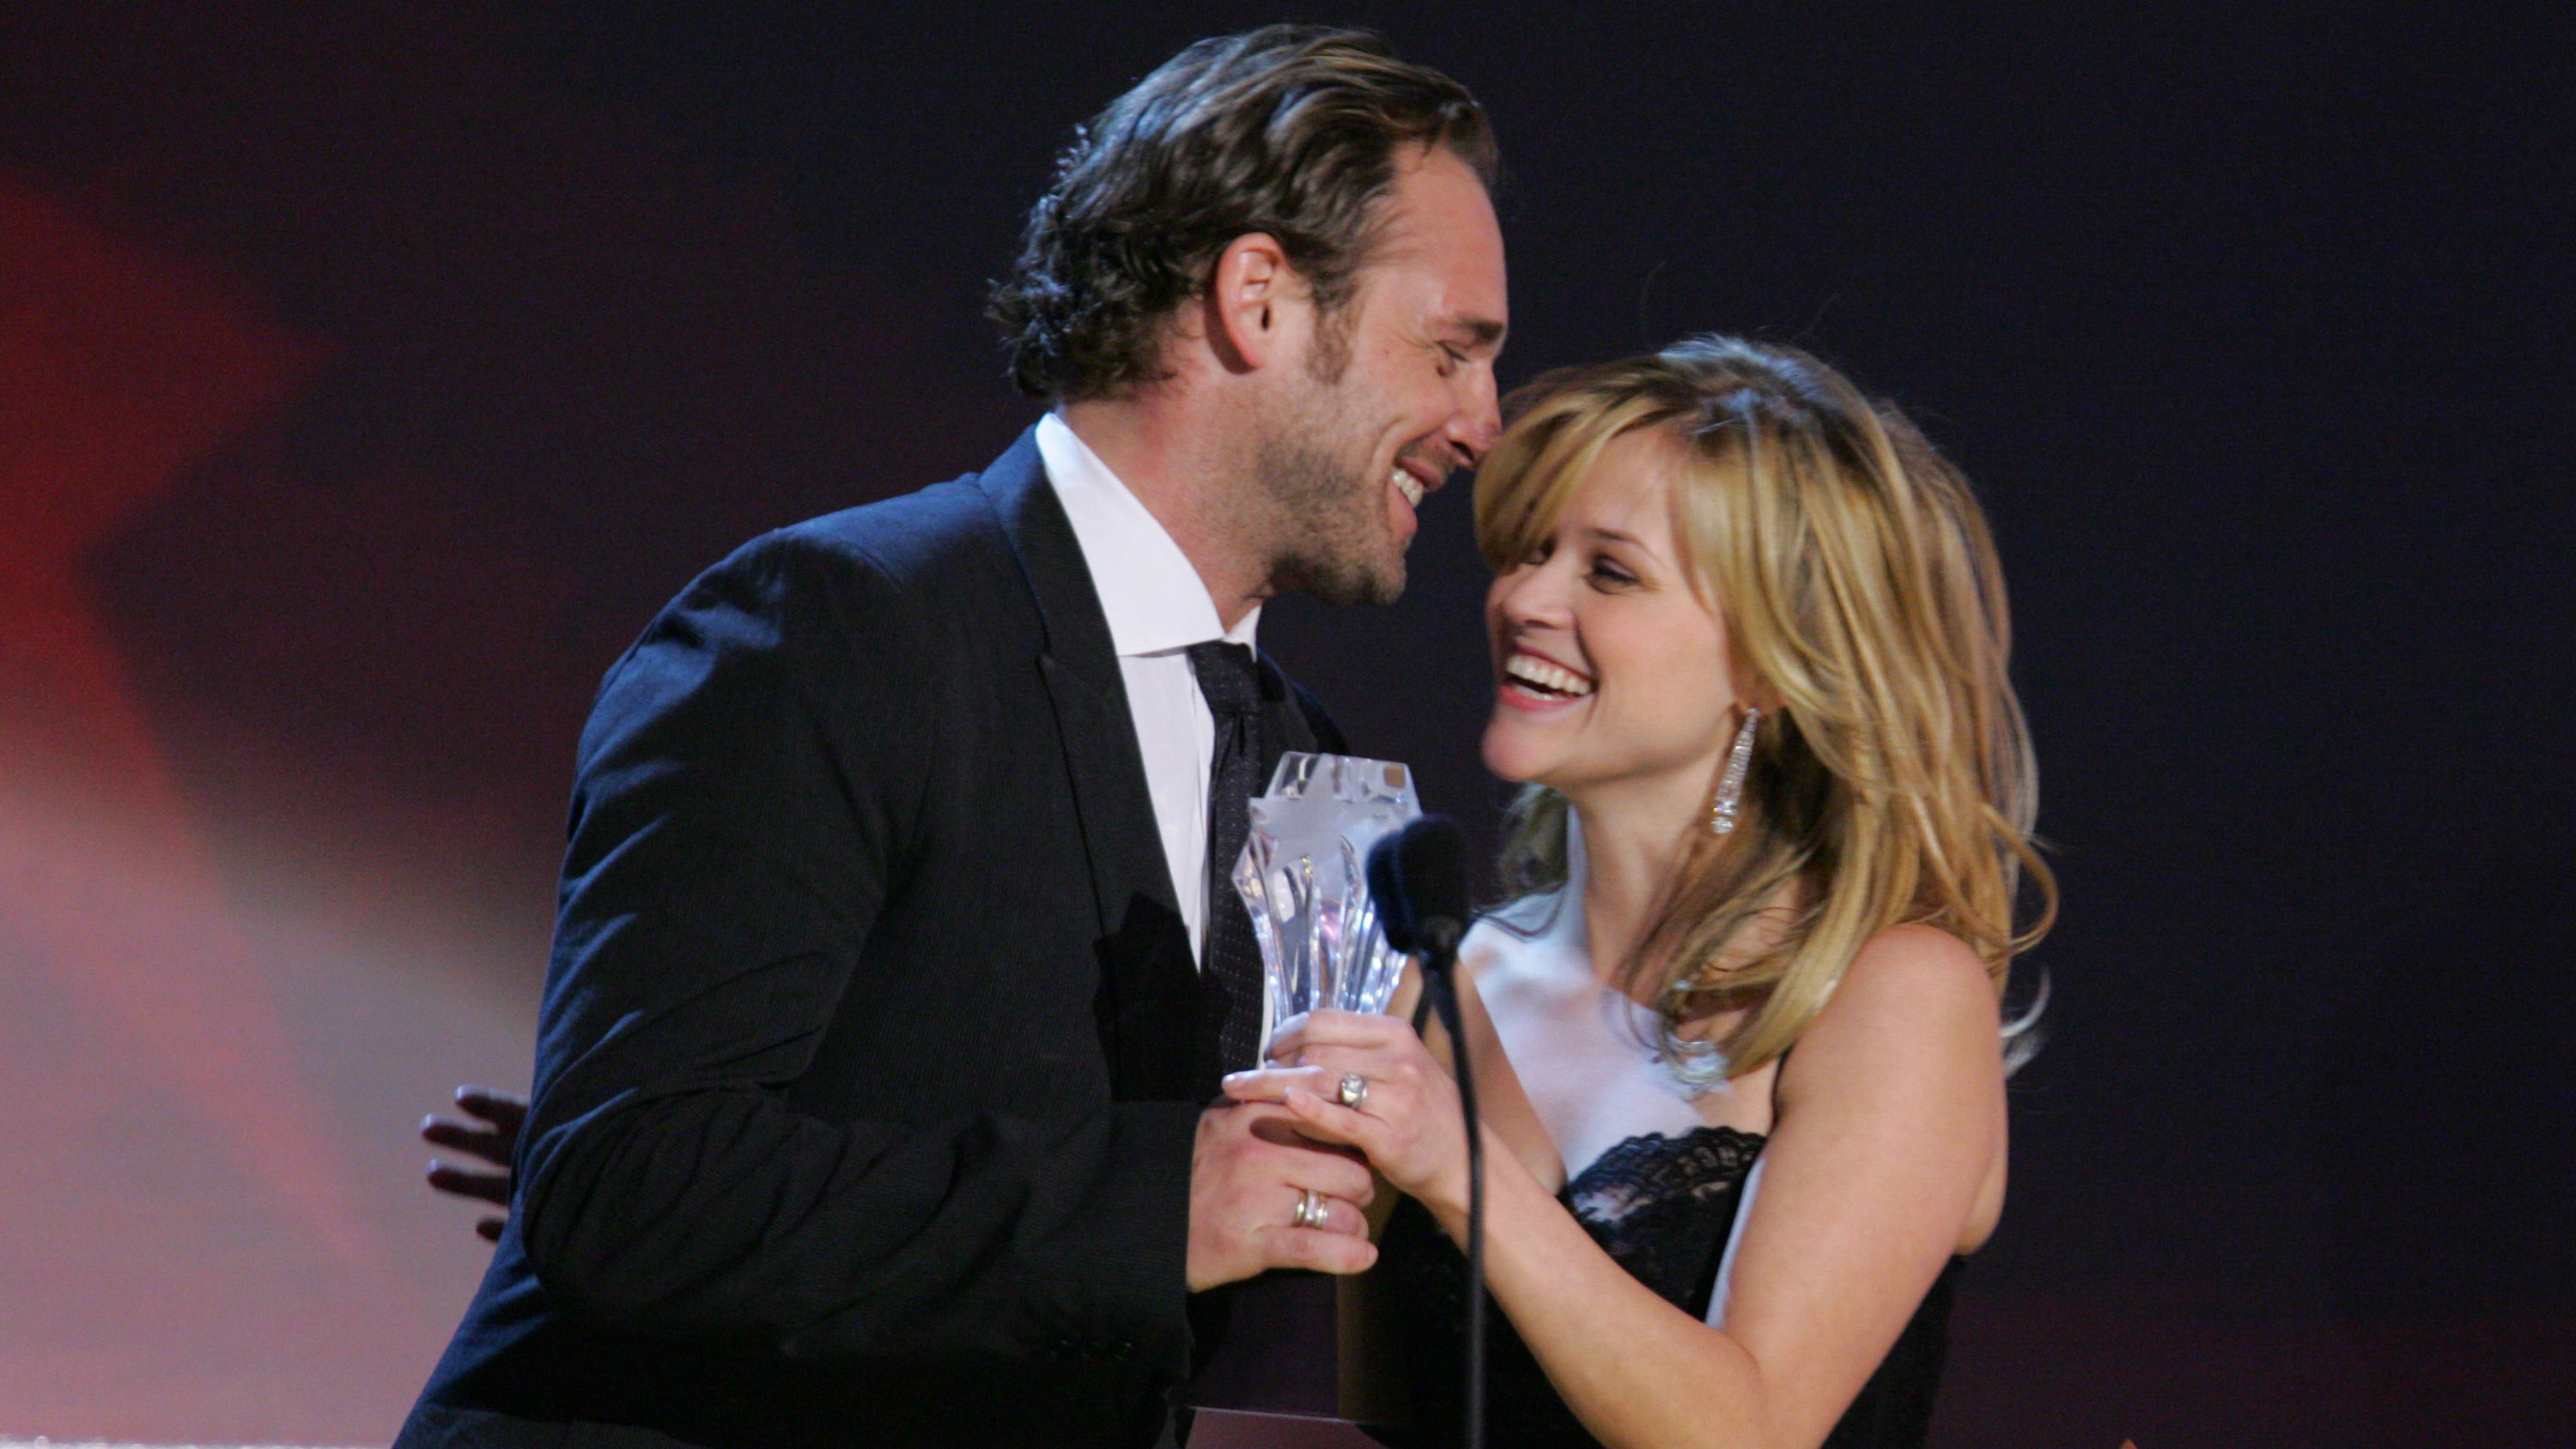 Sweet Home Alabama Sequel Josh Lucas Wants To Make Another Movie